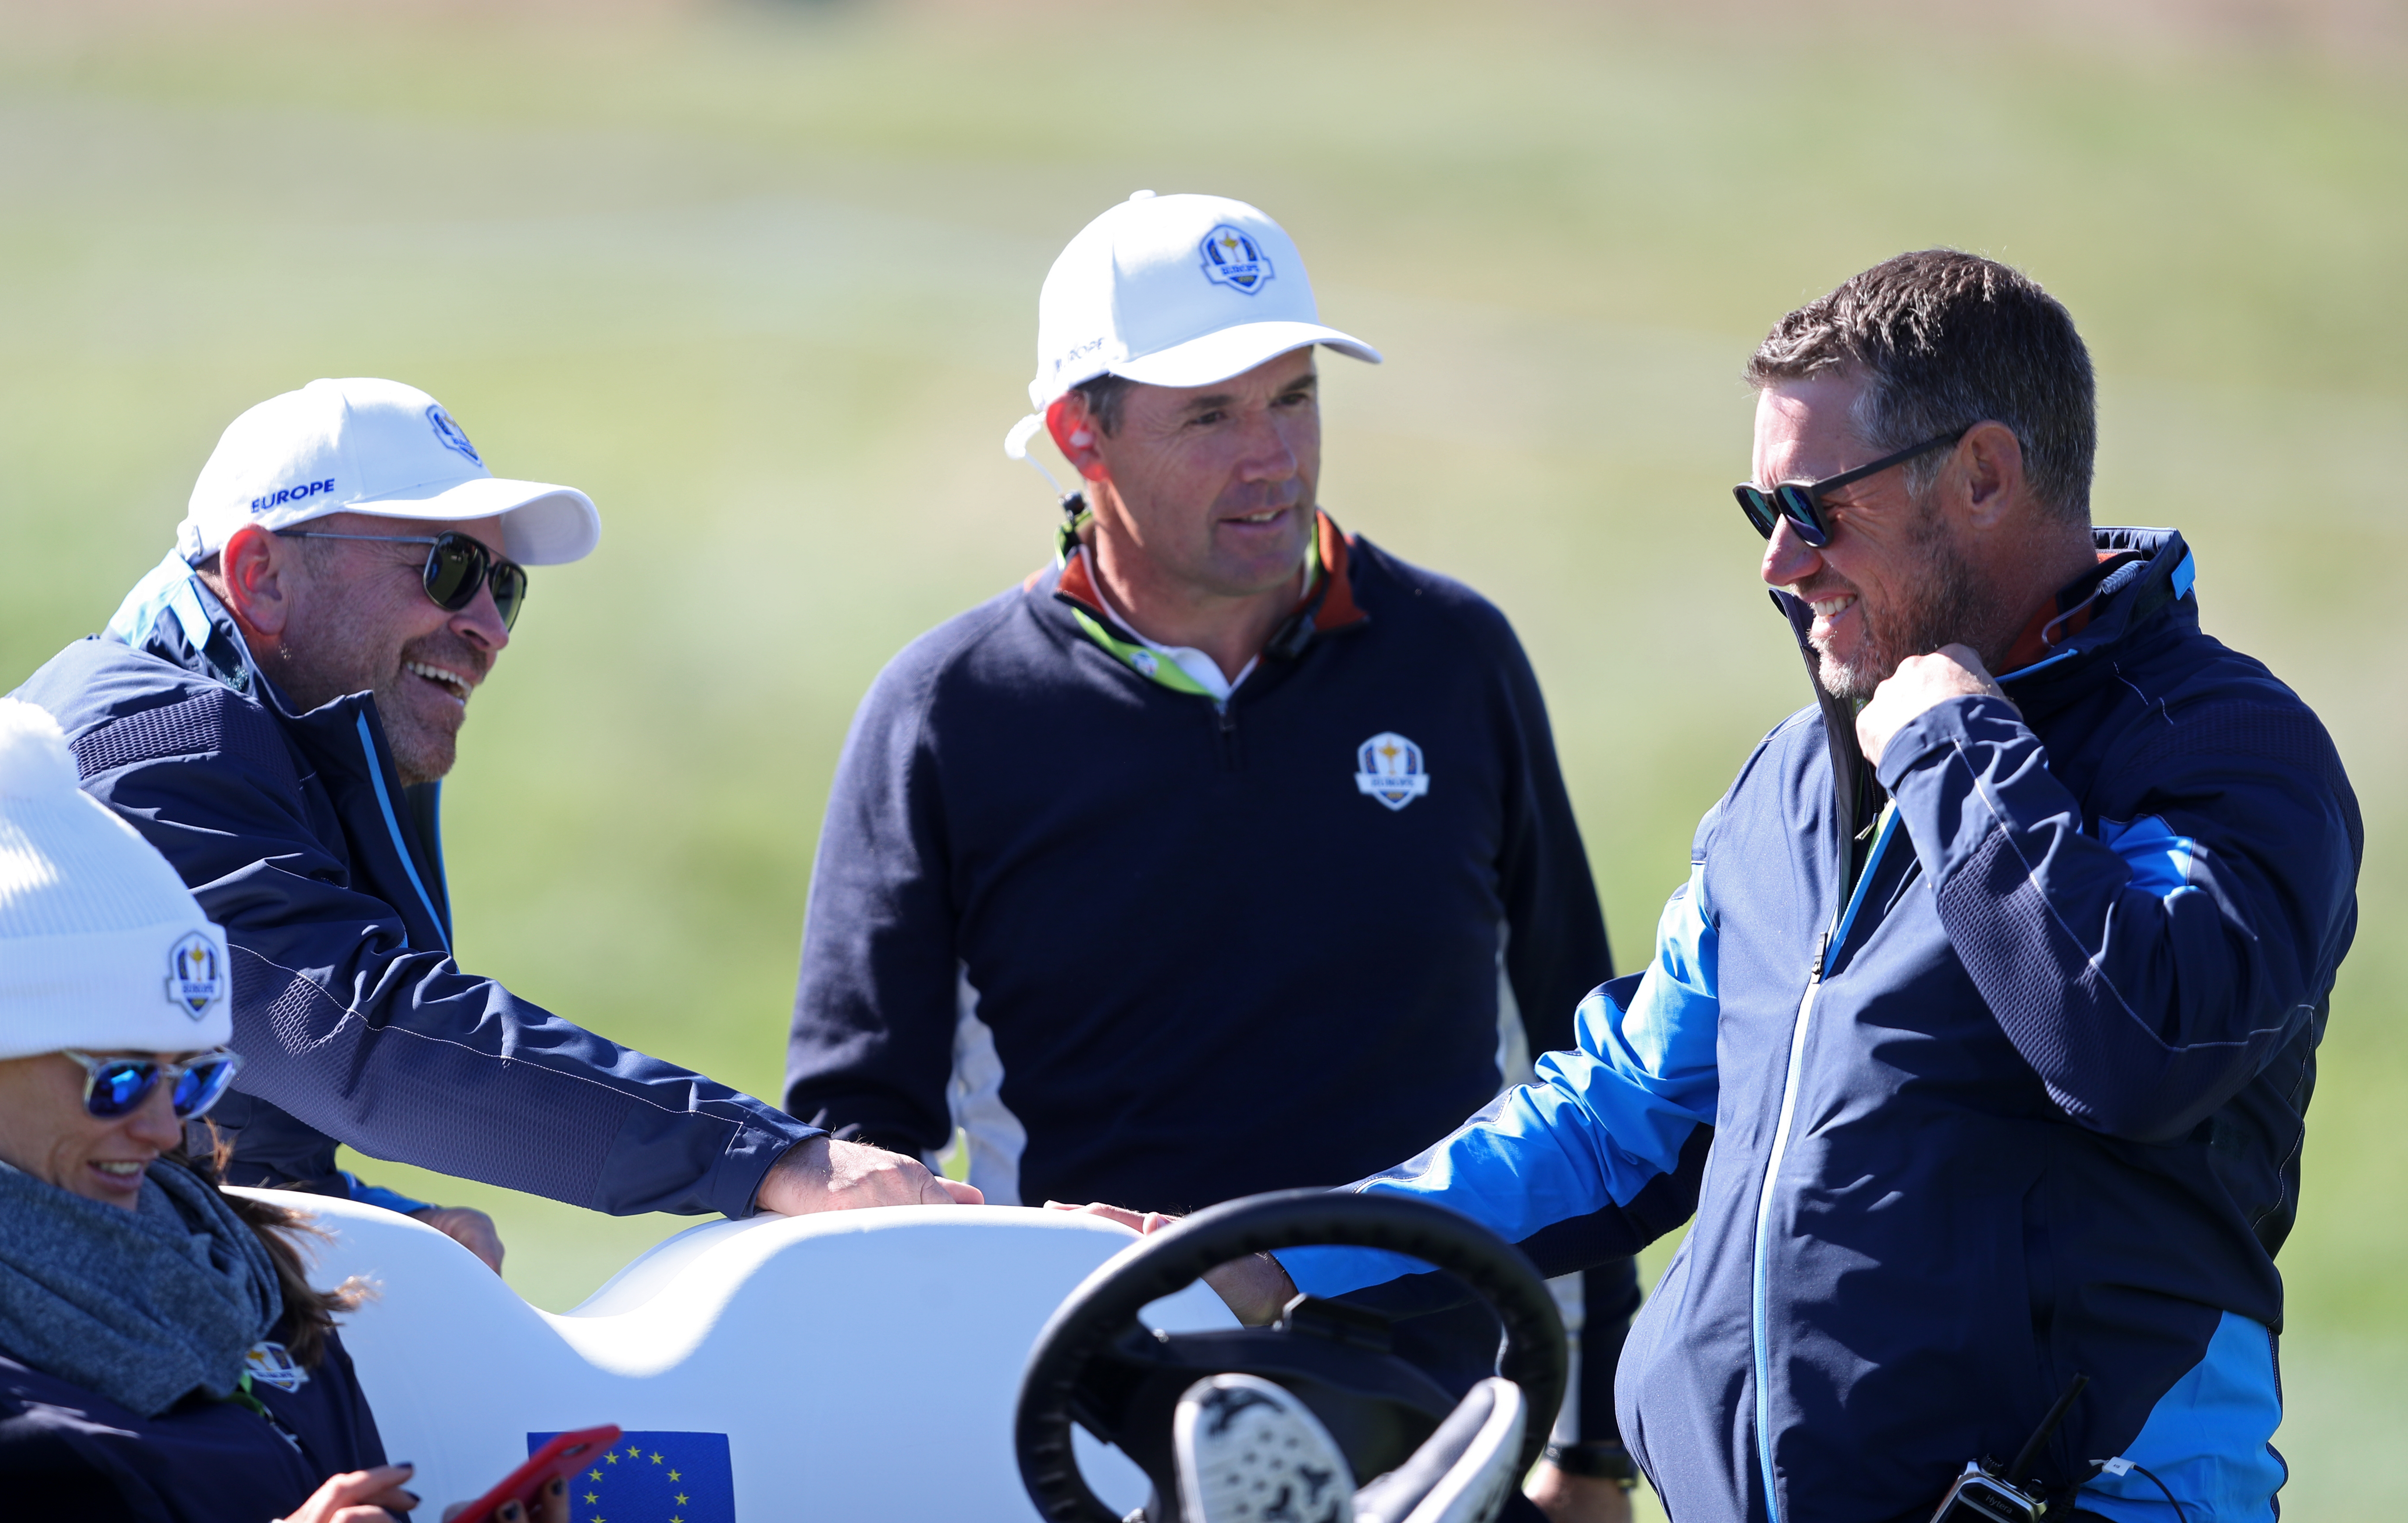 Bjorn plays down need to rush naming next Ryder Cup captain